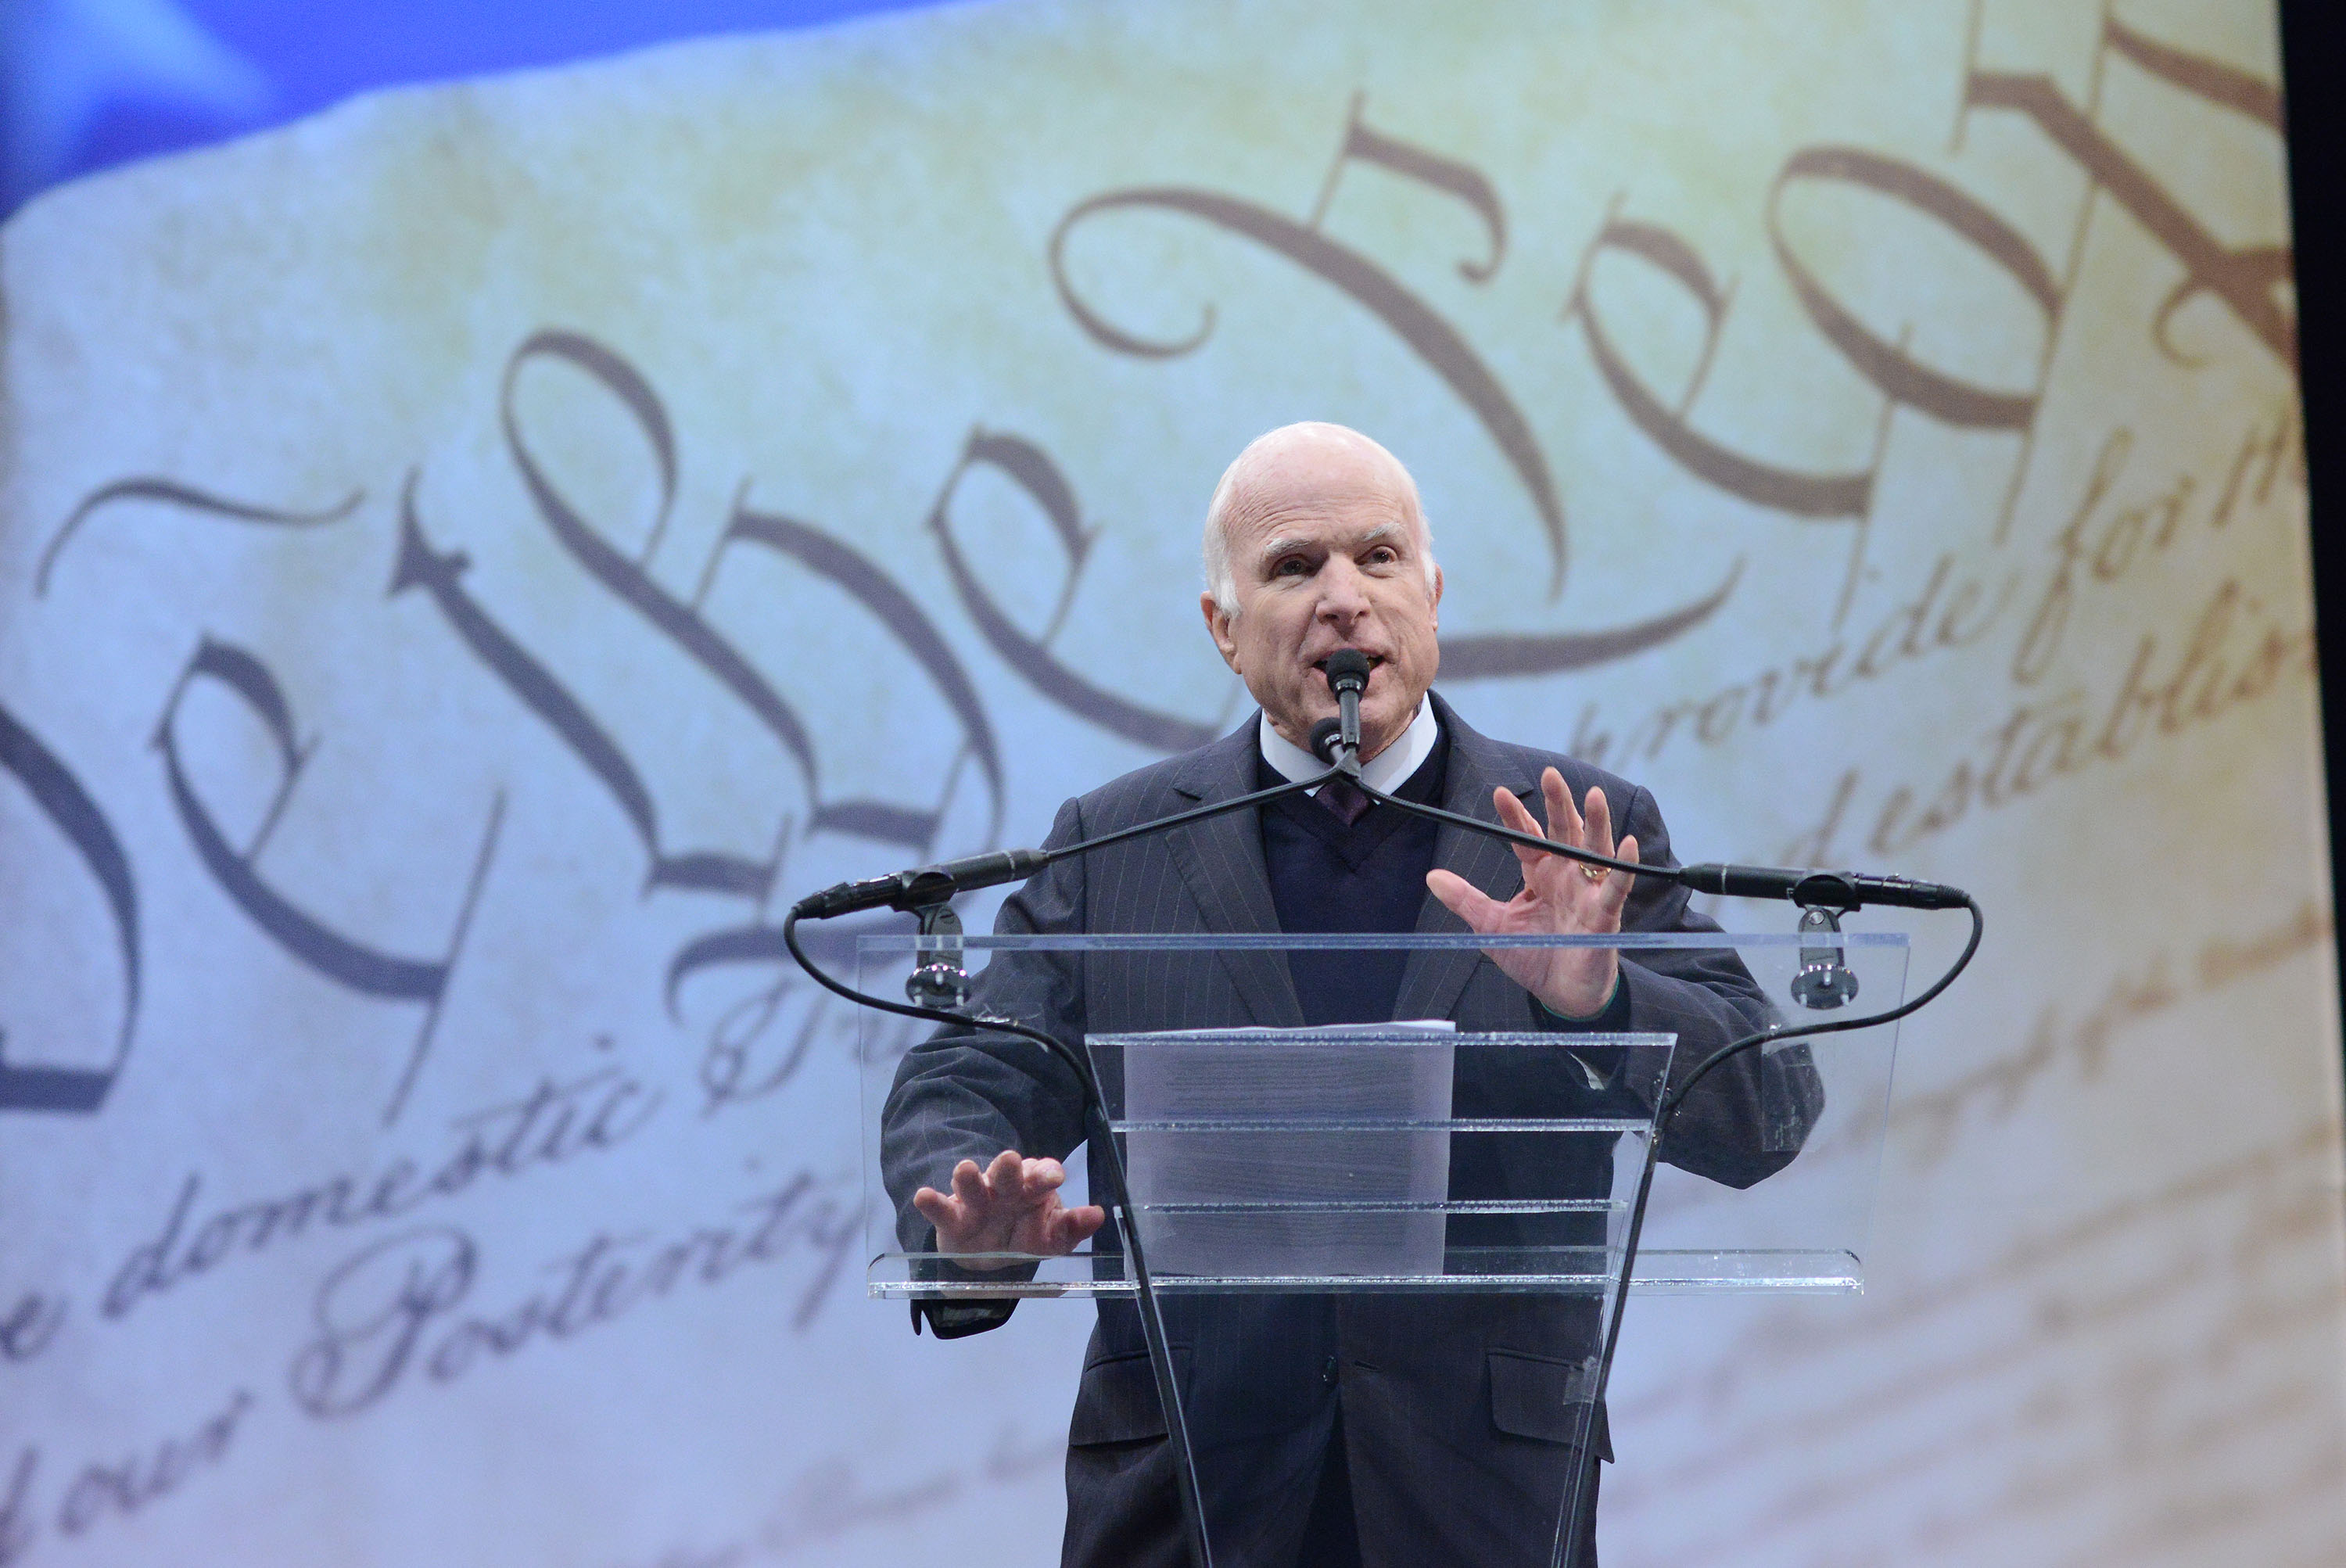 Sen. John McCain (R-AZ) makes remarks after receiving the the 2017 Liberty Medal from former Vice President Joe Biden at the National Constitution Center on Oct. 16, 2017 in Philadelphia.